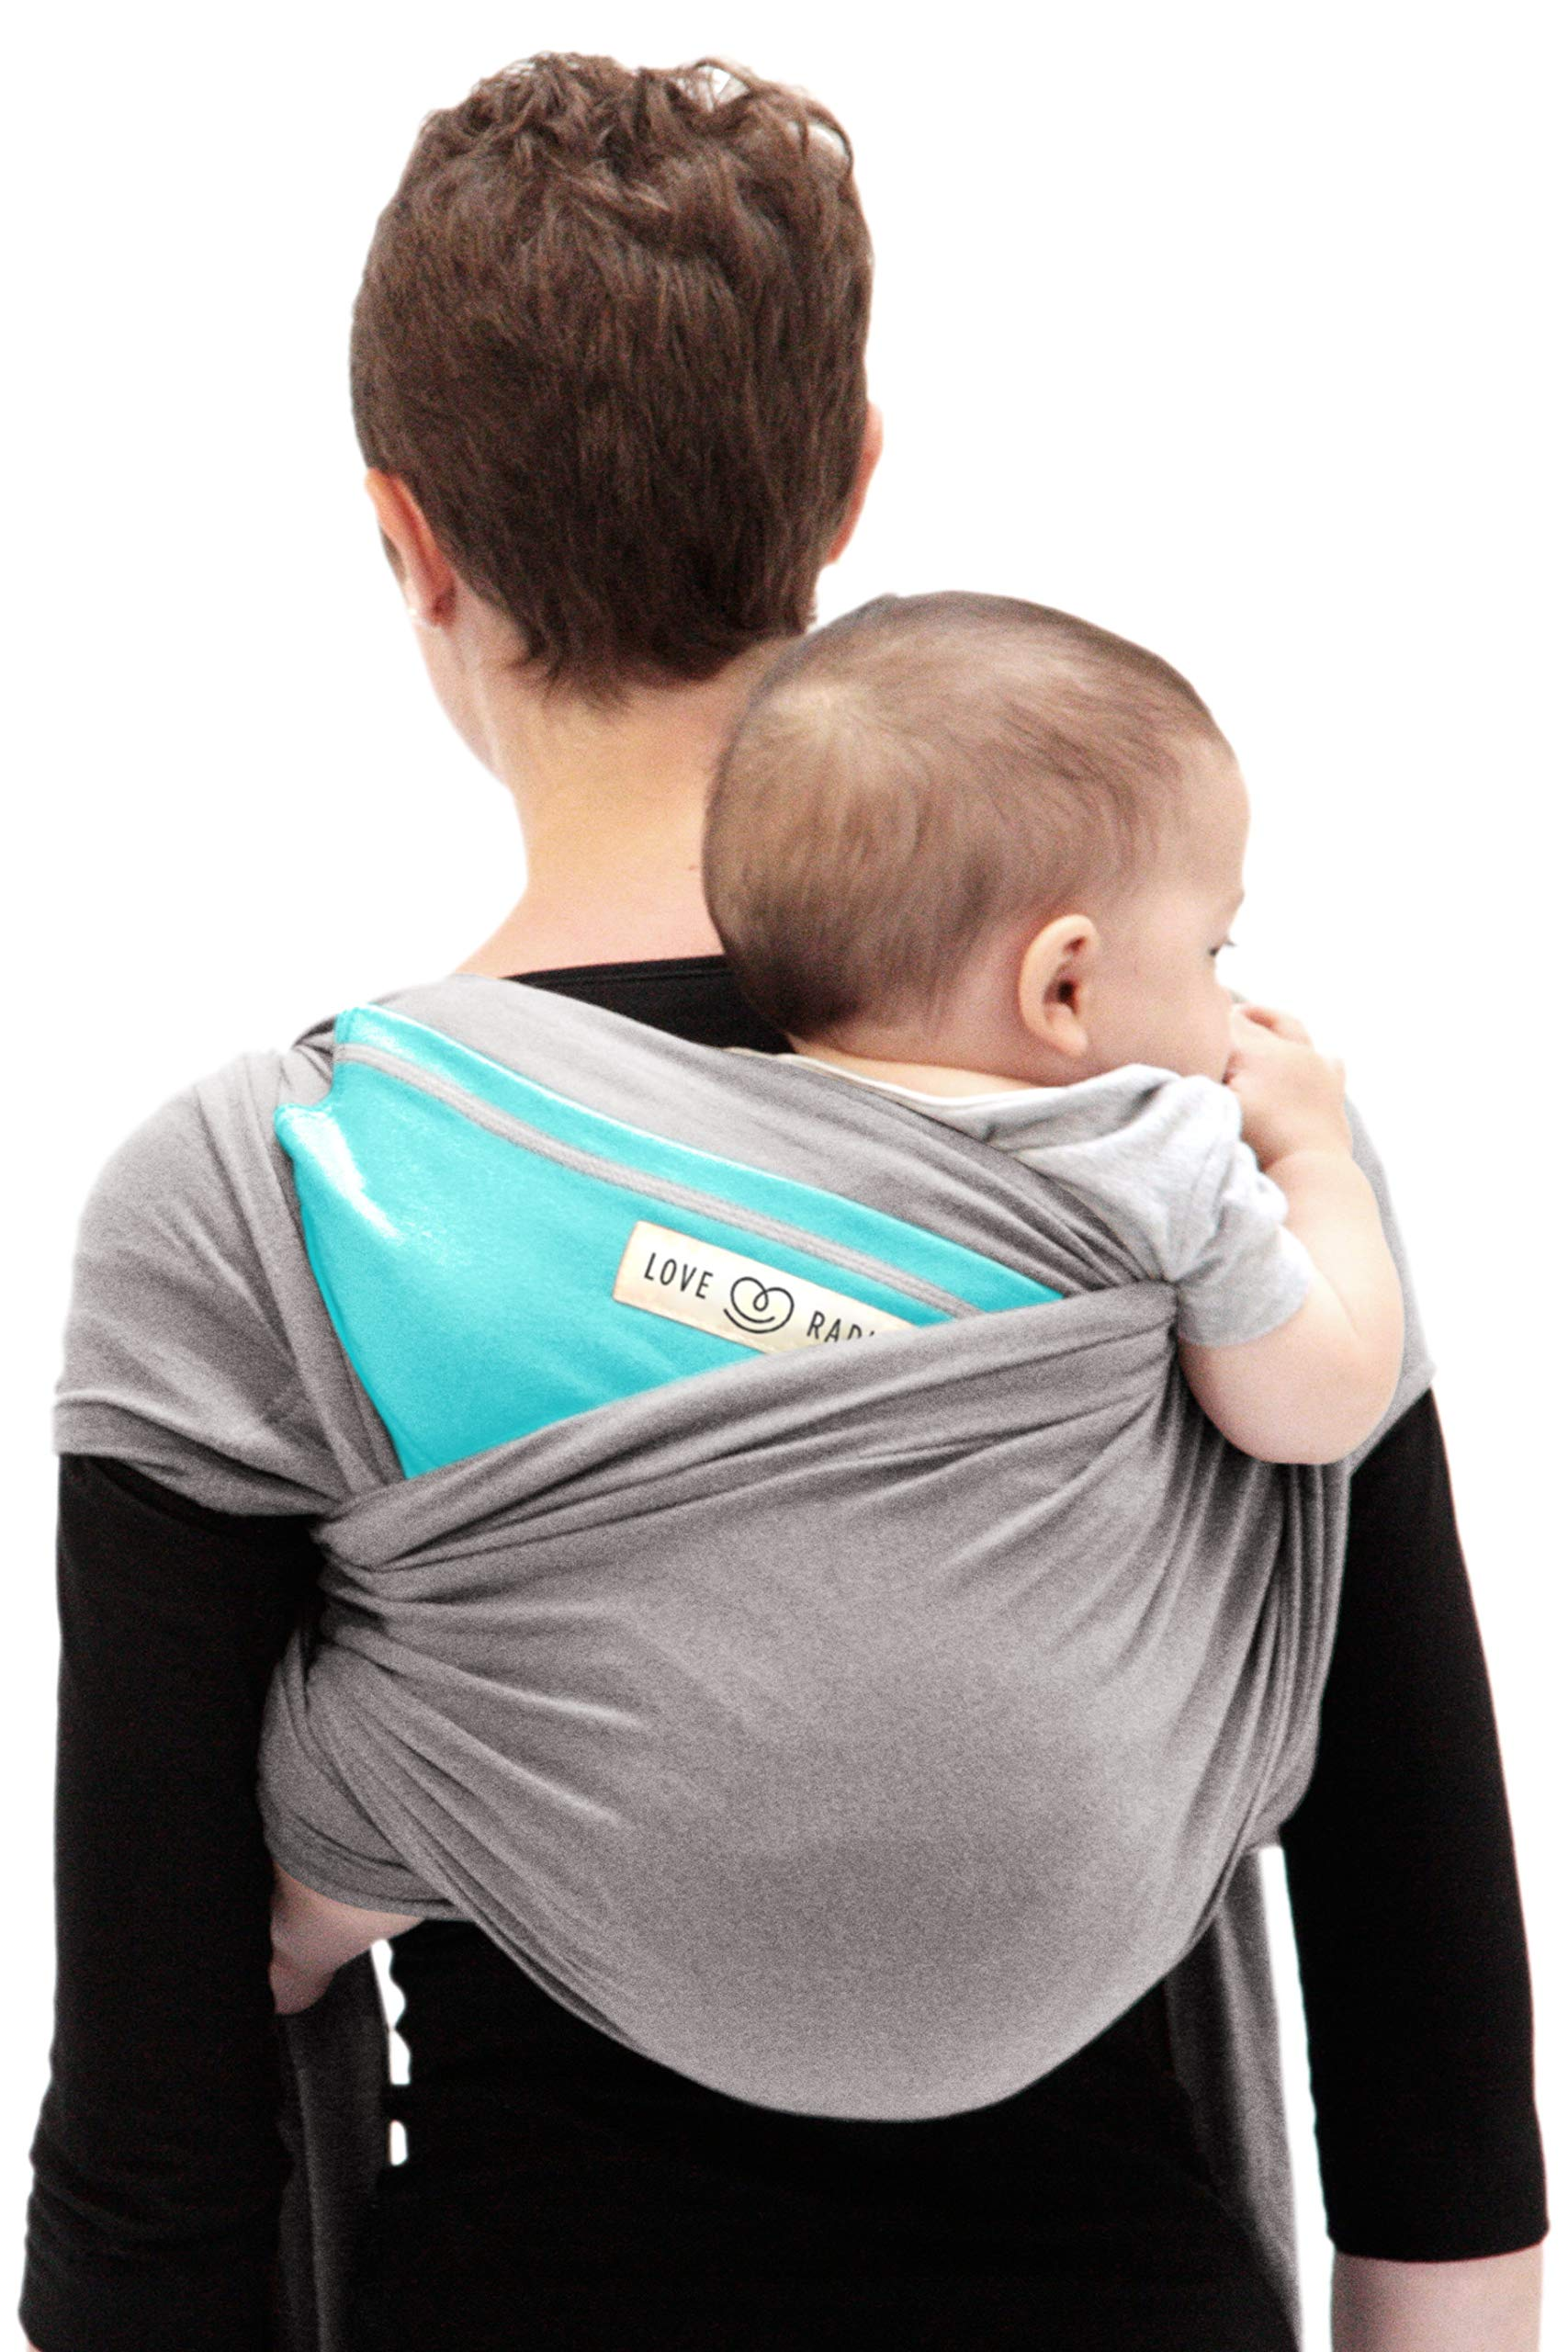 Je Porte Mon Bébé L'Originale Baby Sling Je Porte Mon Bébé High Quality Elastic Baby Carrier Dense, elastic and breathable material Great support, fits your baby's body like a second skin. 31